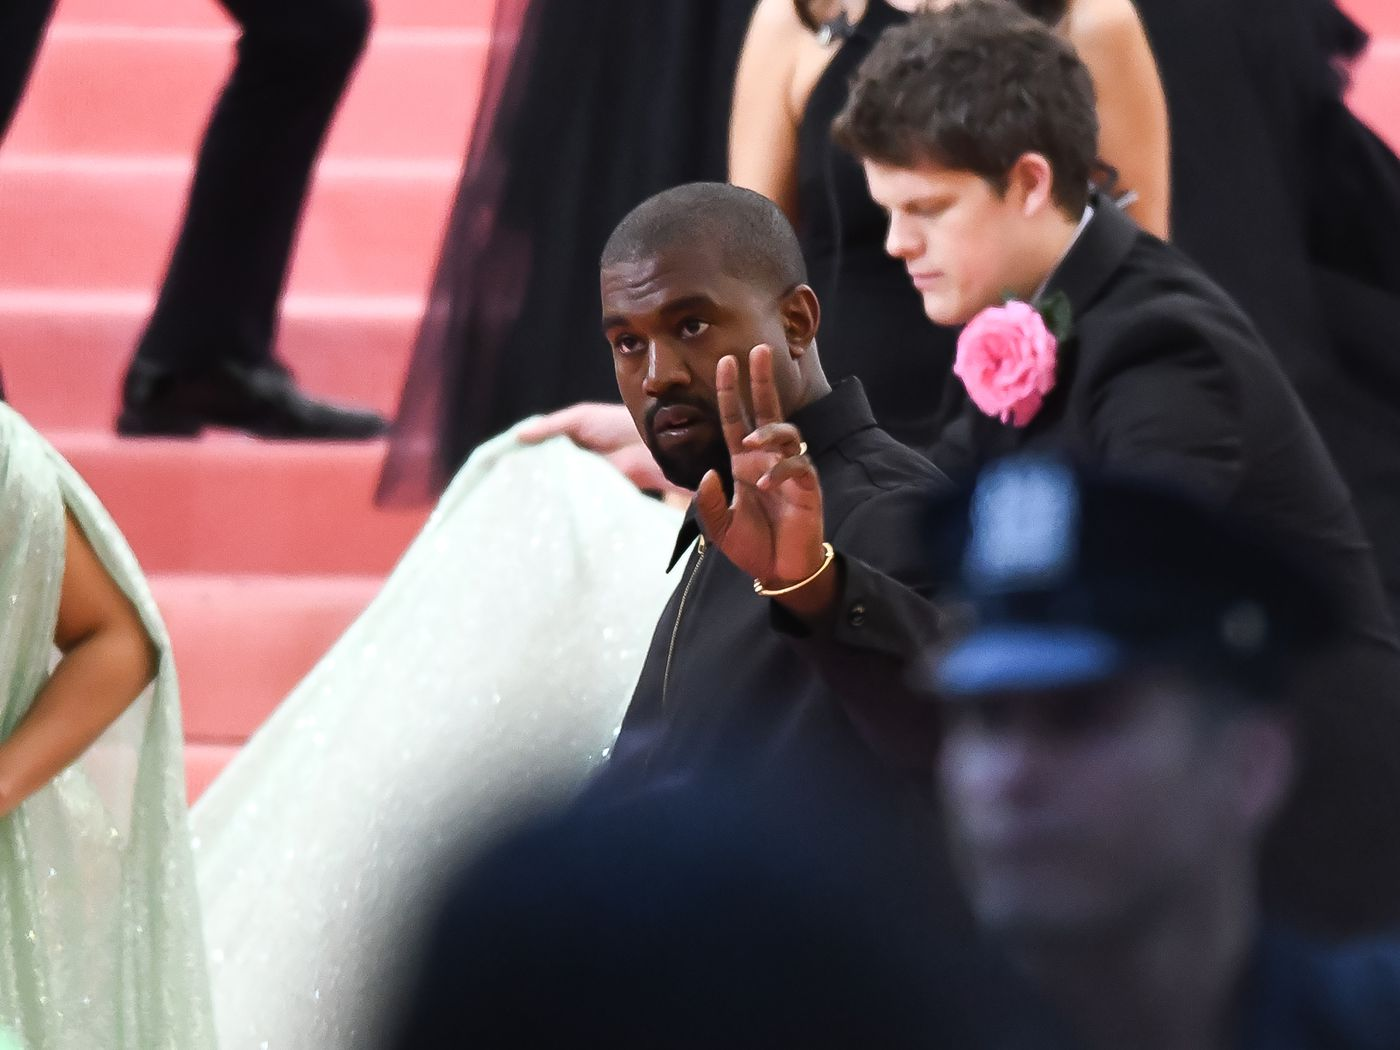 Kanye West S Jesus Is King Sunday Service And Domes What We Know Vox